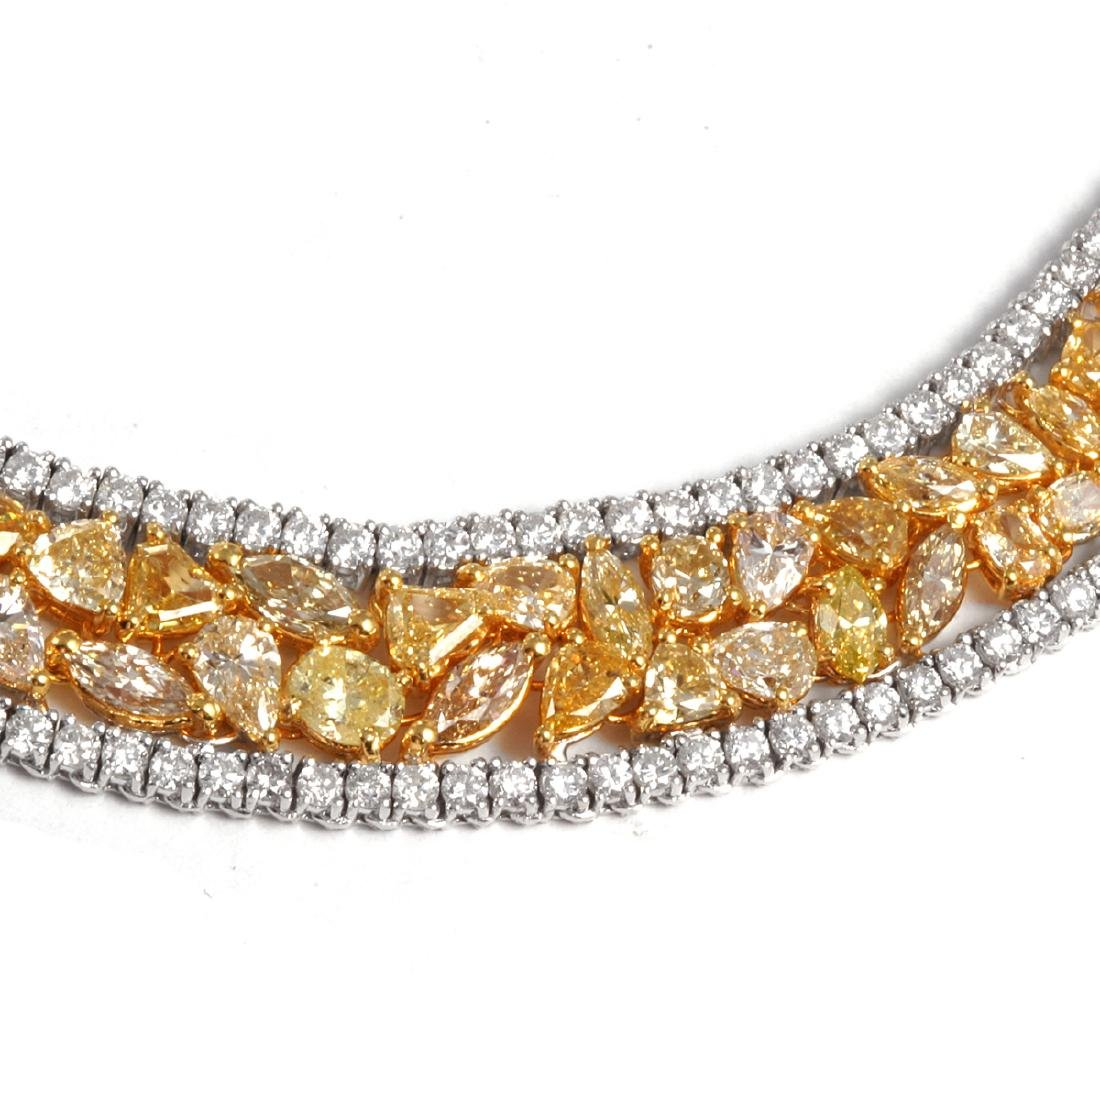 Necklace set with 44.50ct yellow and white diamond - 3